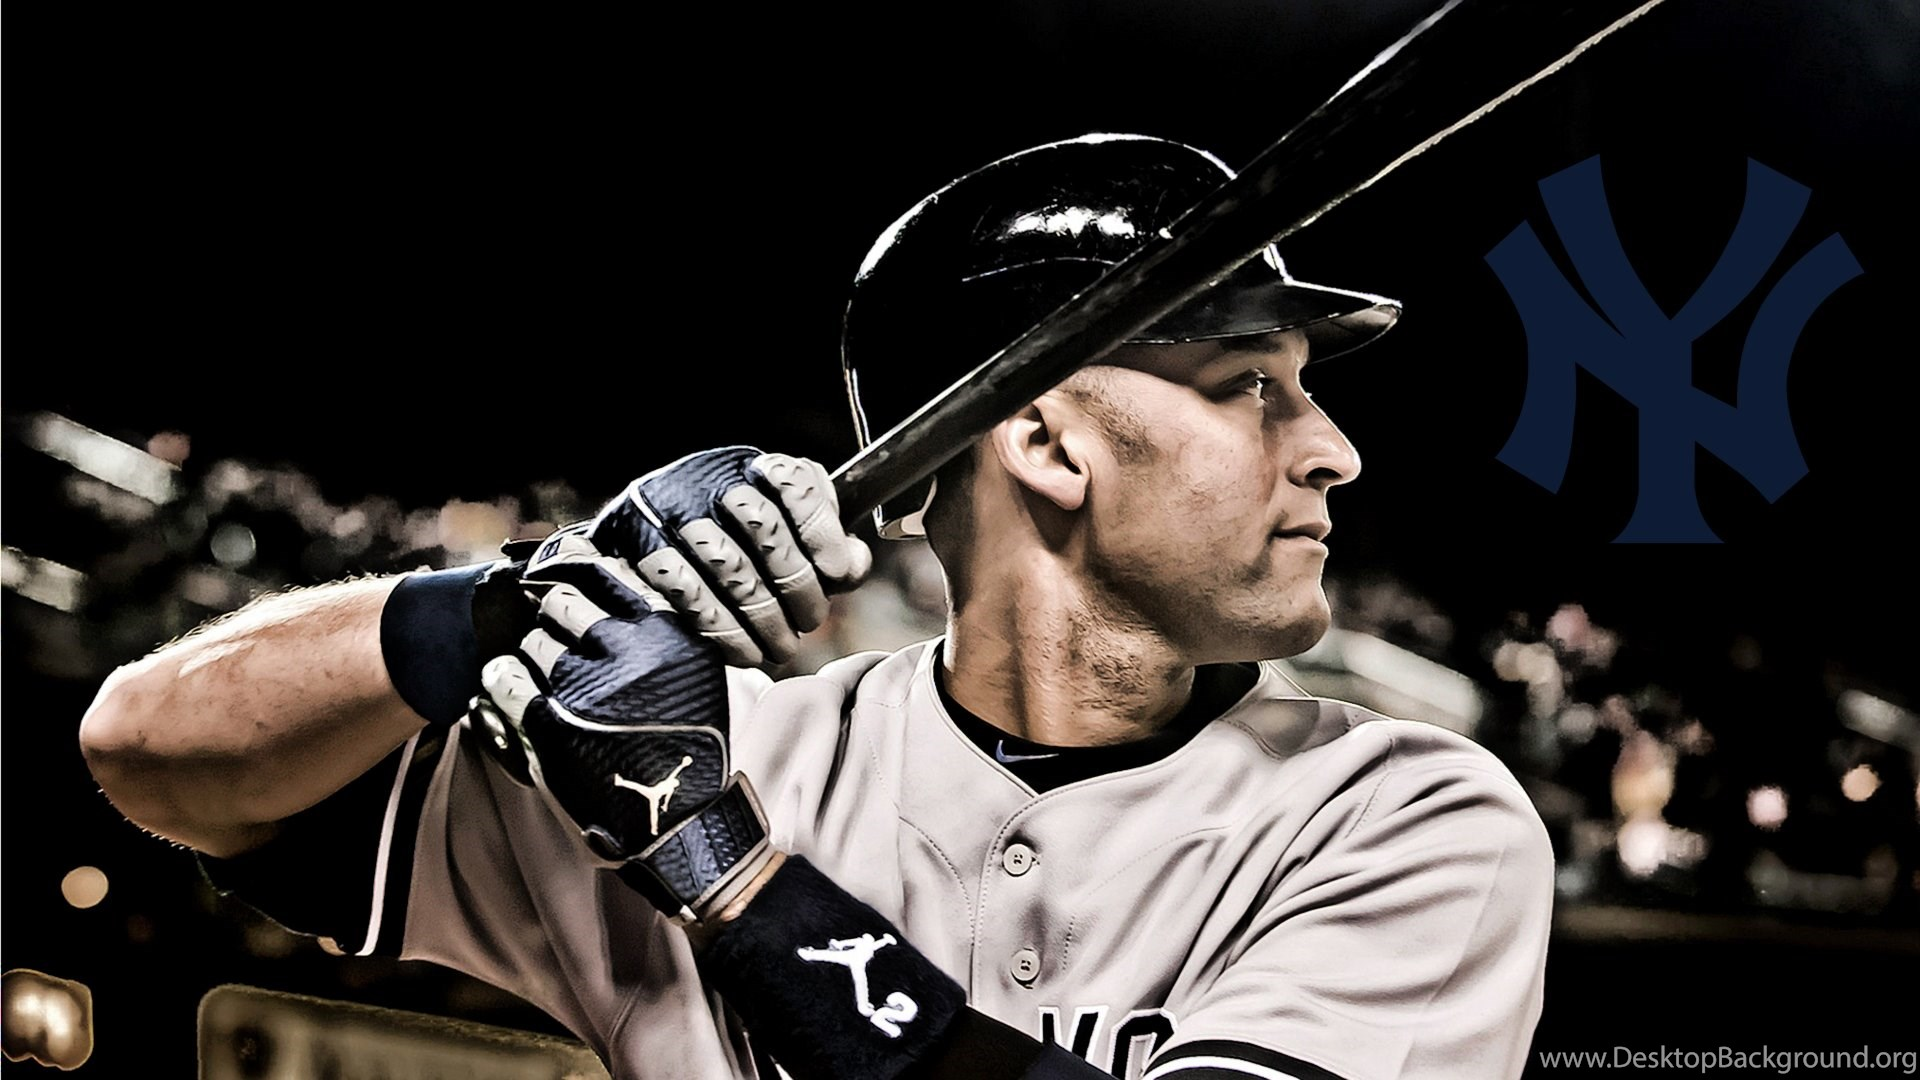 Mlb New York Yankees Baseball Player Wallpapers Hd Free Desktop